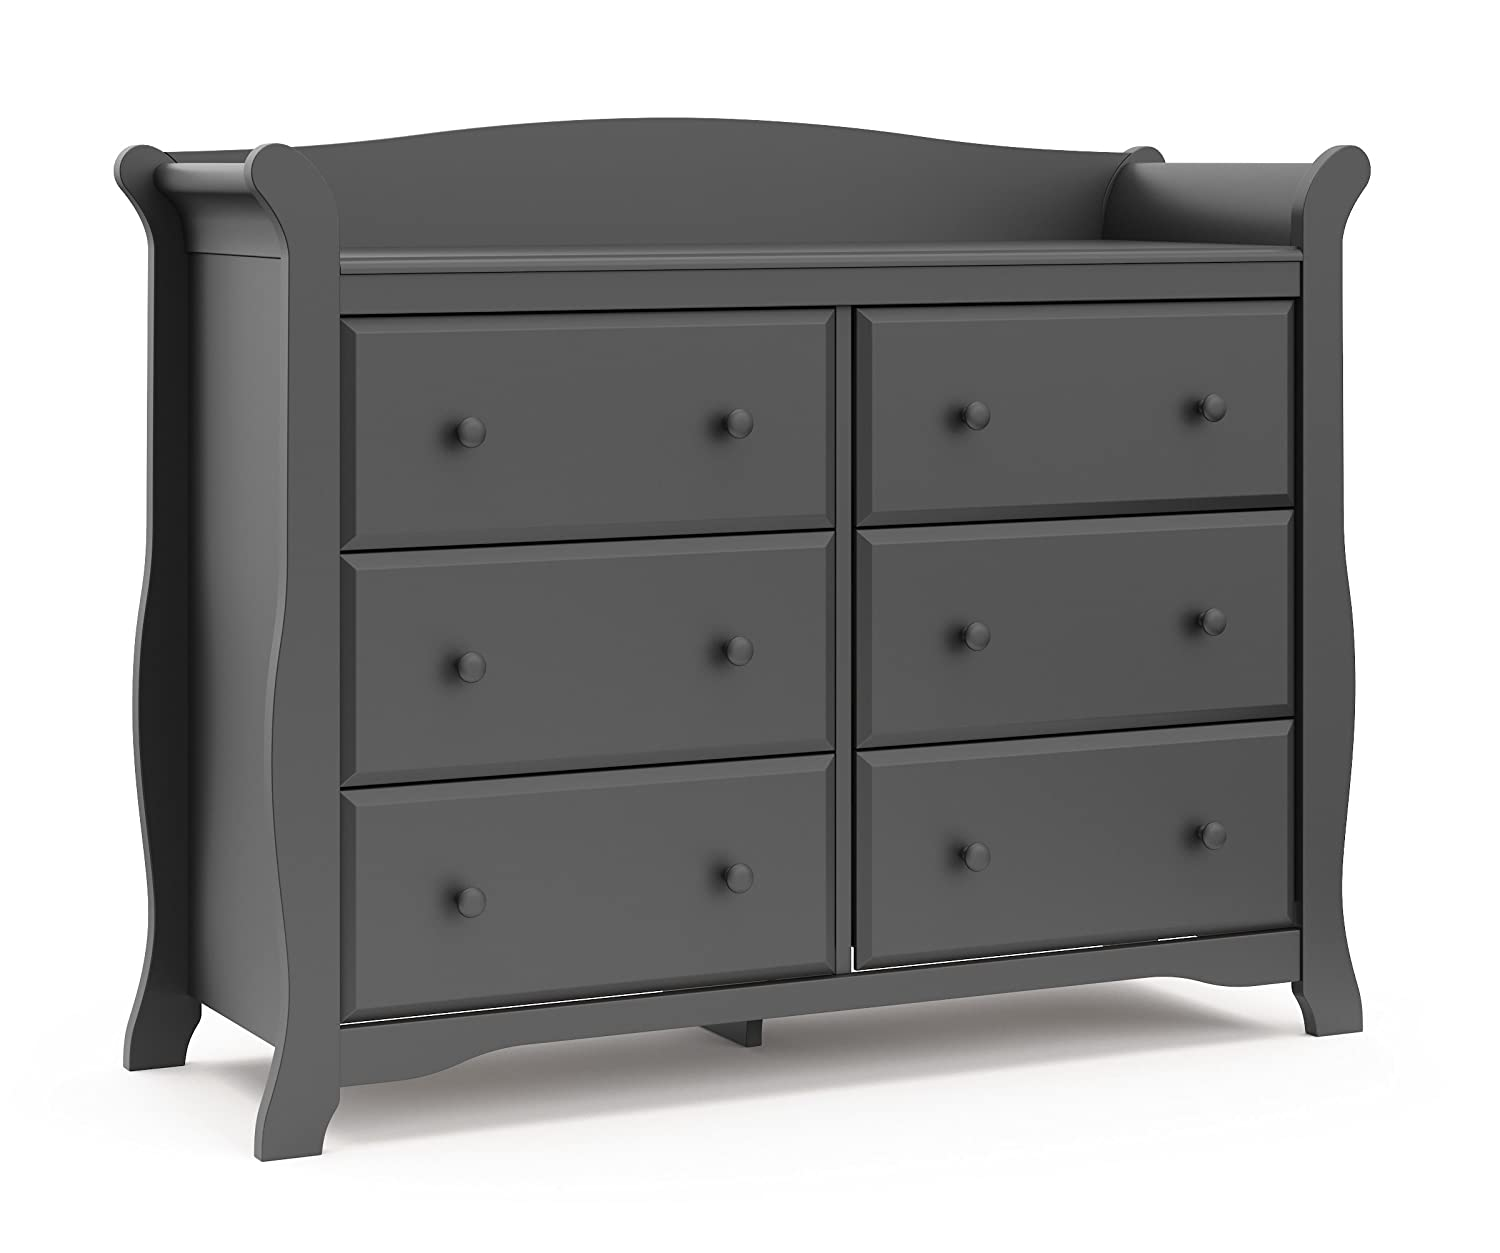 Storkcraft Avalon 5 Drawer Universal Dresser, White Stork Craft 03555-201